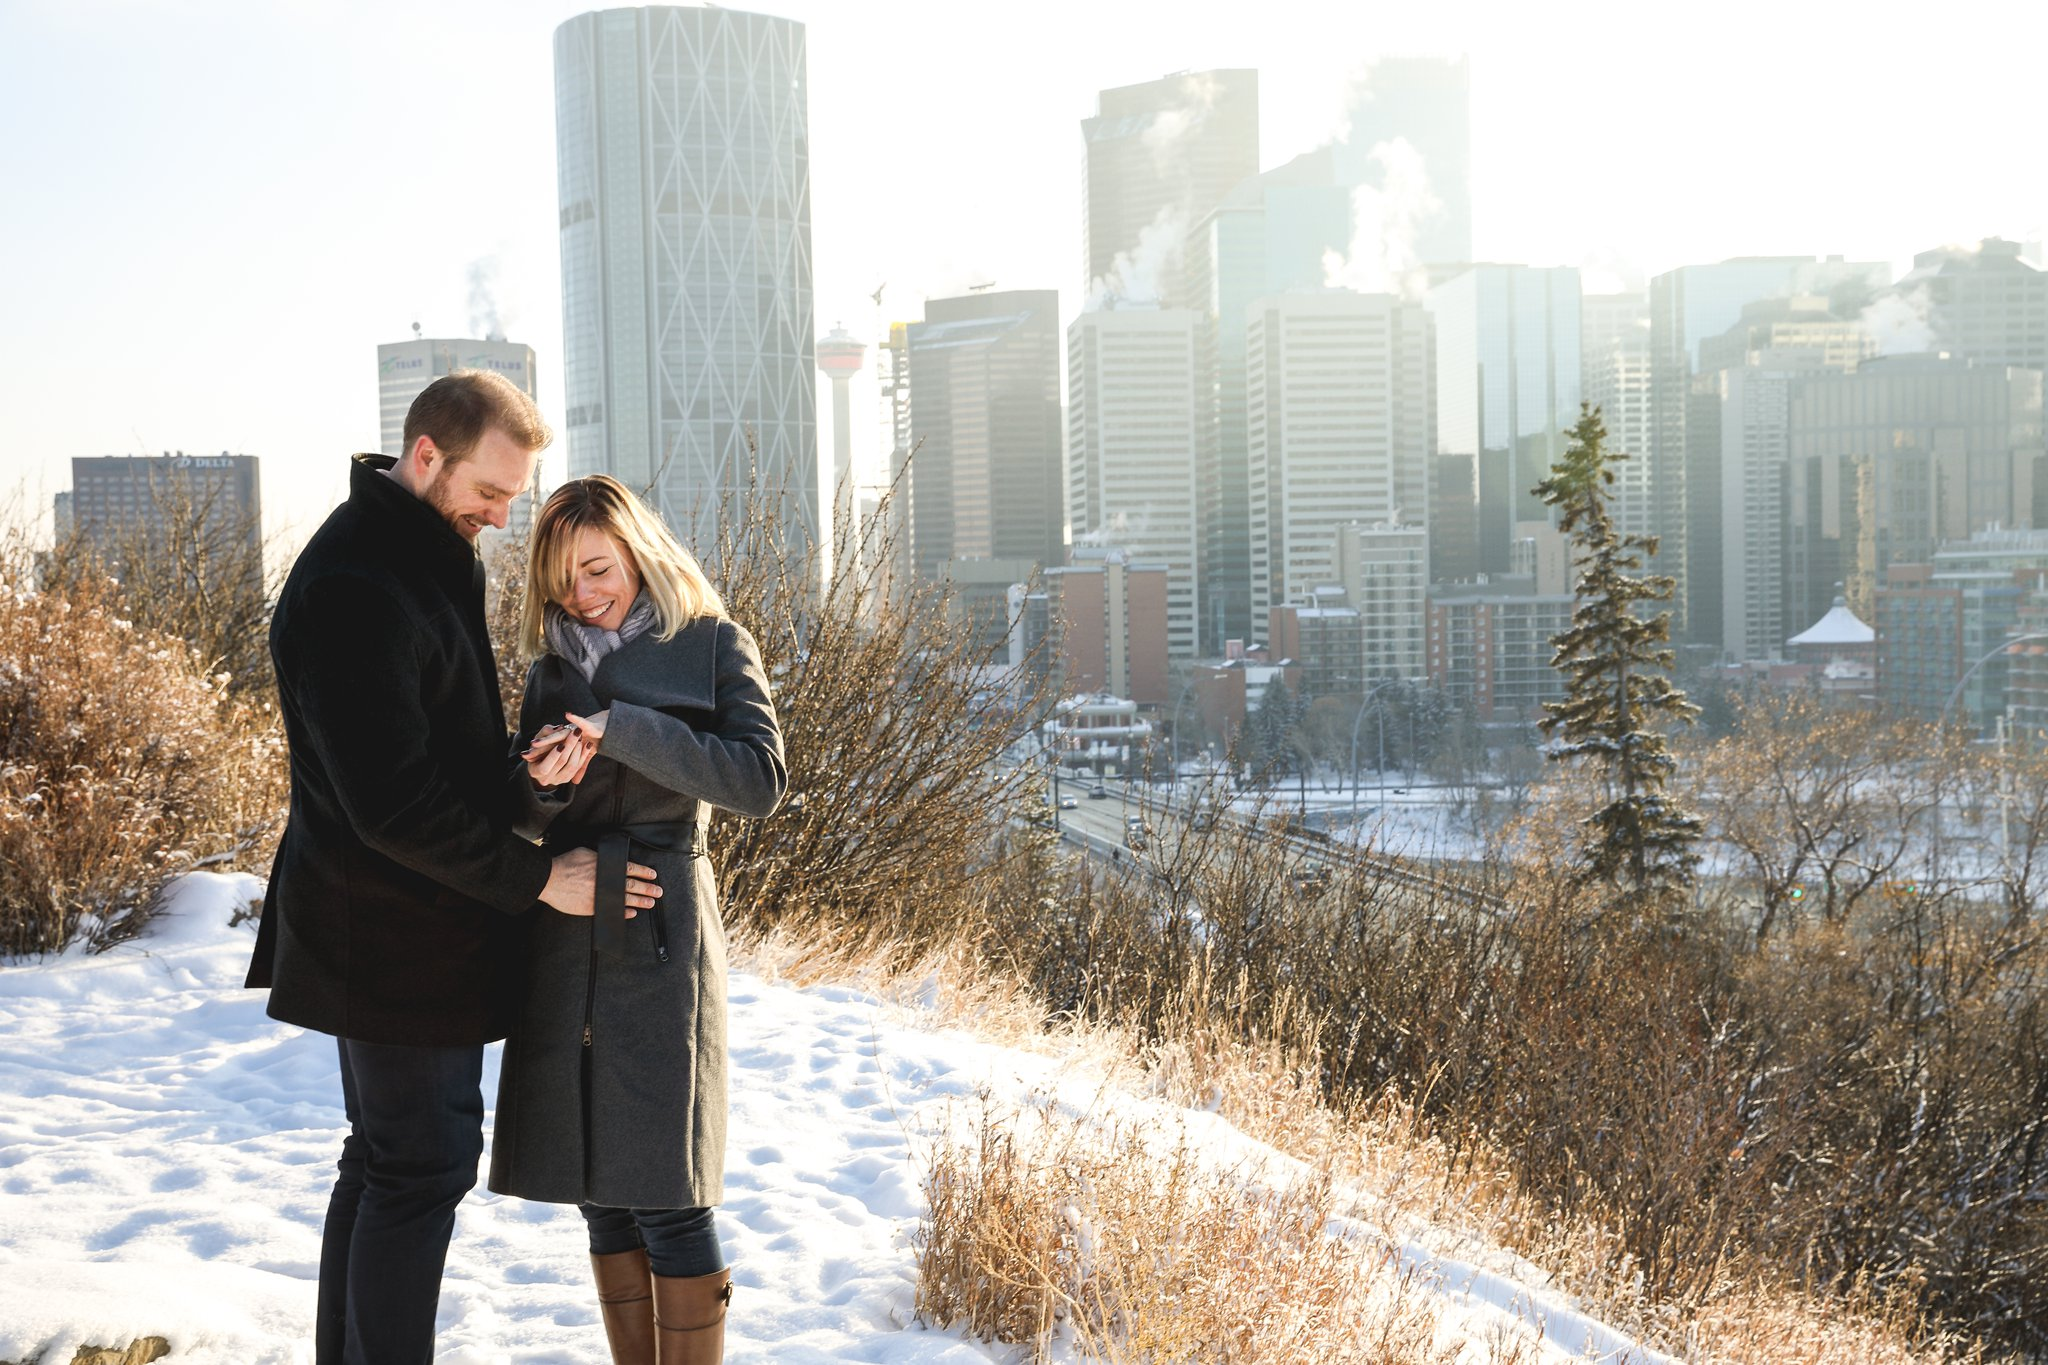 Ashley Daphne Photography Calgary Couple Wedding Photographer Engagement Photos Proposal Photos_0032.jpg